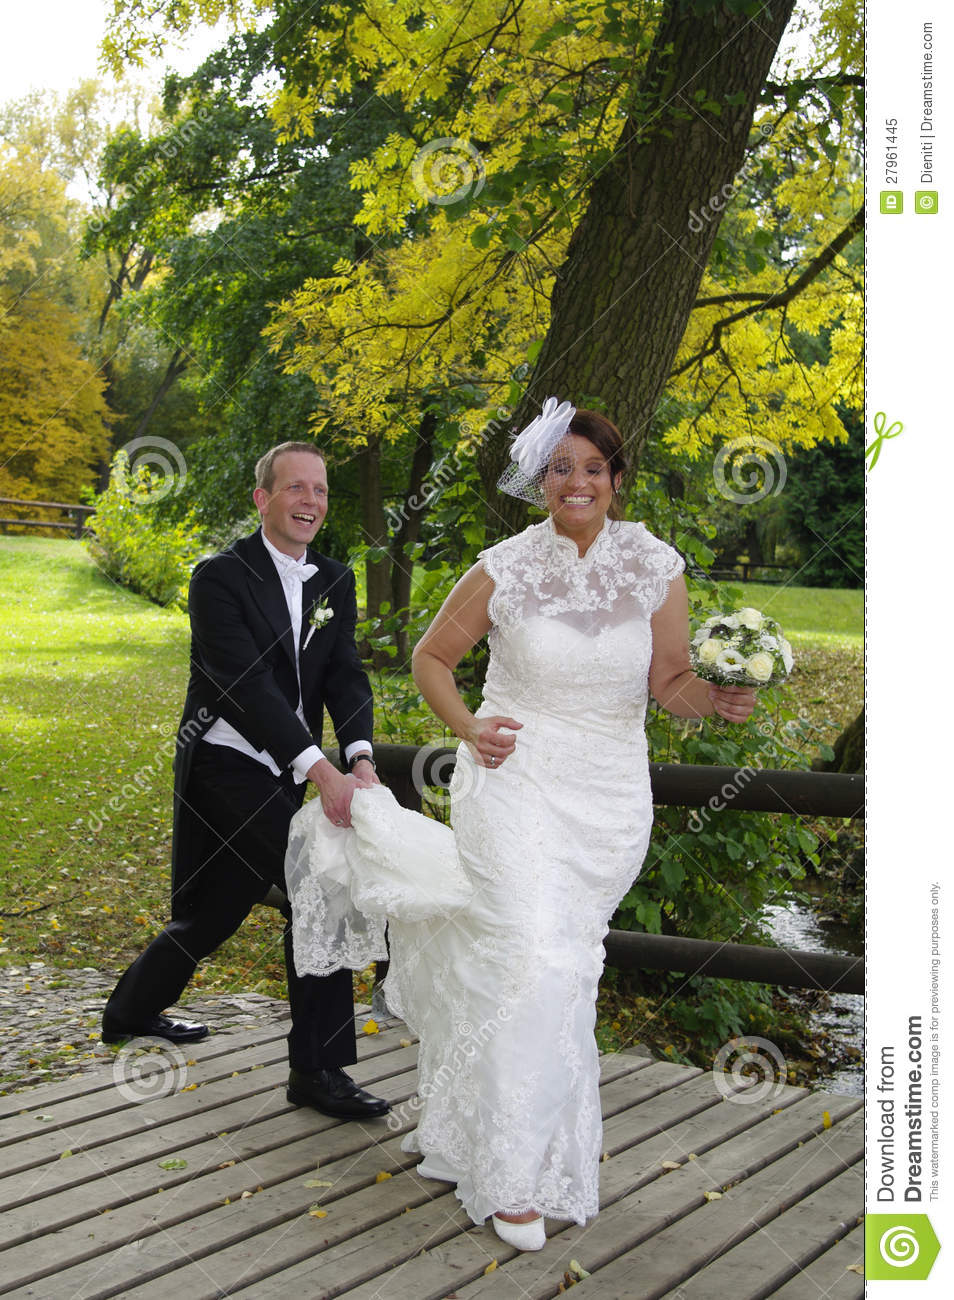 Bride Running Away Royalty Free Stock Photo Image 27961445